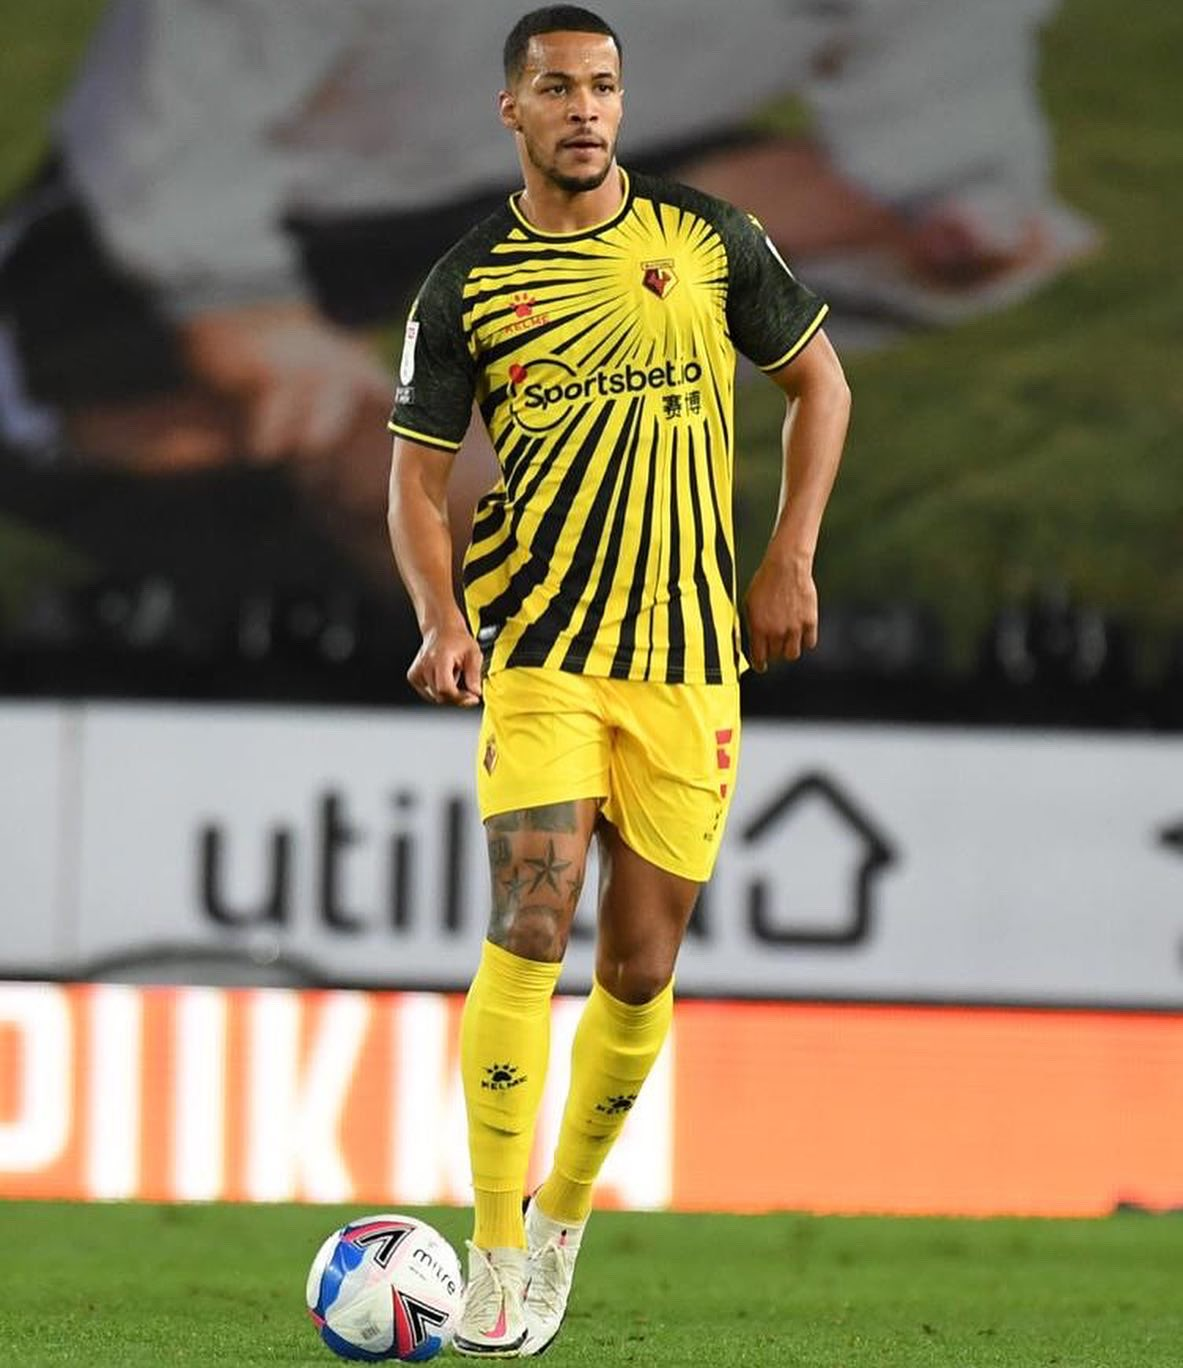 Watford Boss Ivic: Troost-Ekong Available For Blackburn Rovers Clash